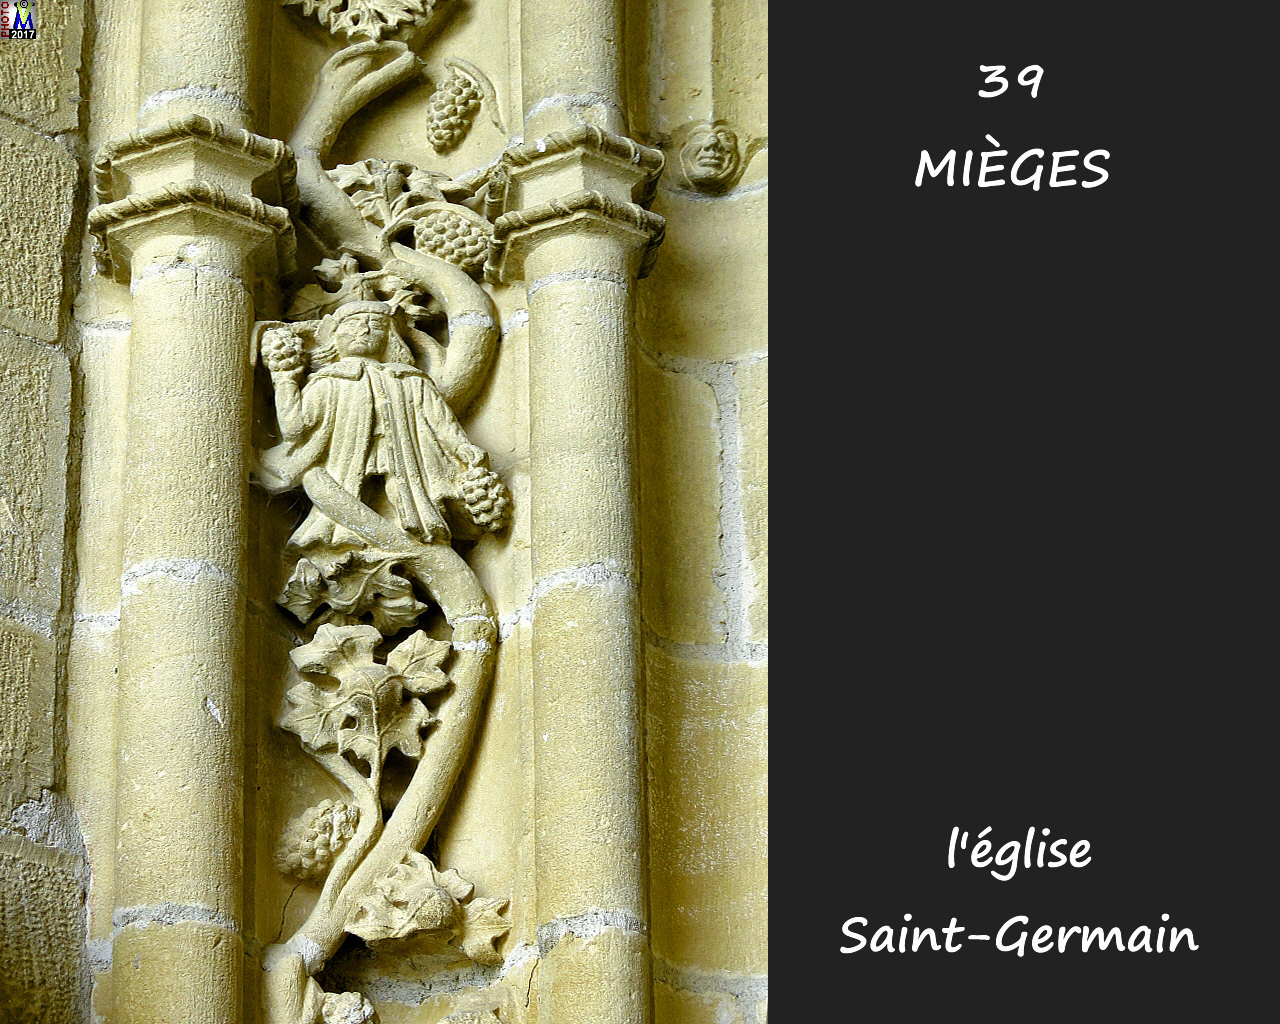 39MIEGES_eglise_126.jpg